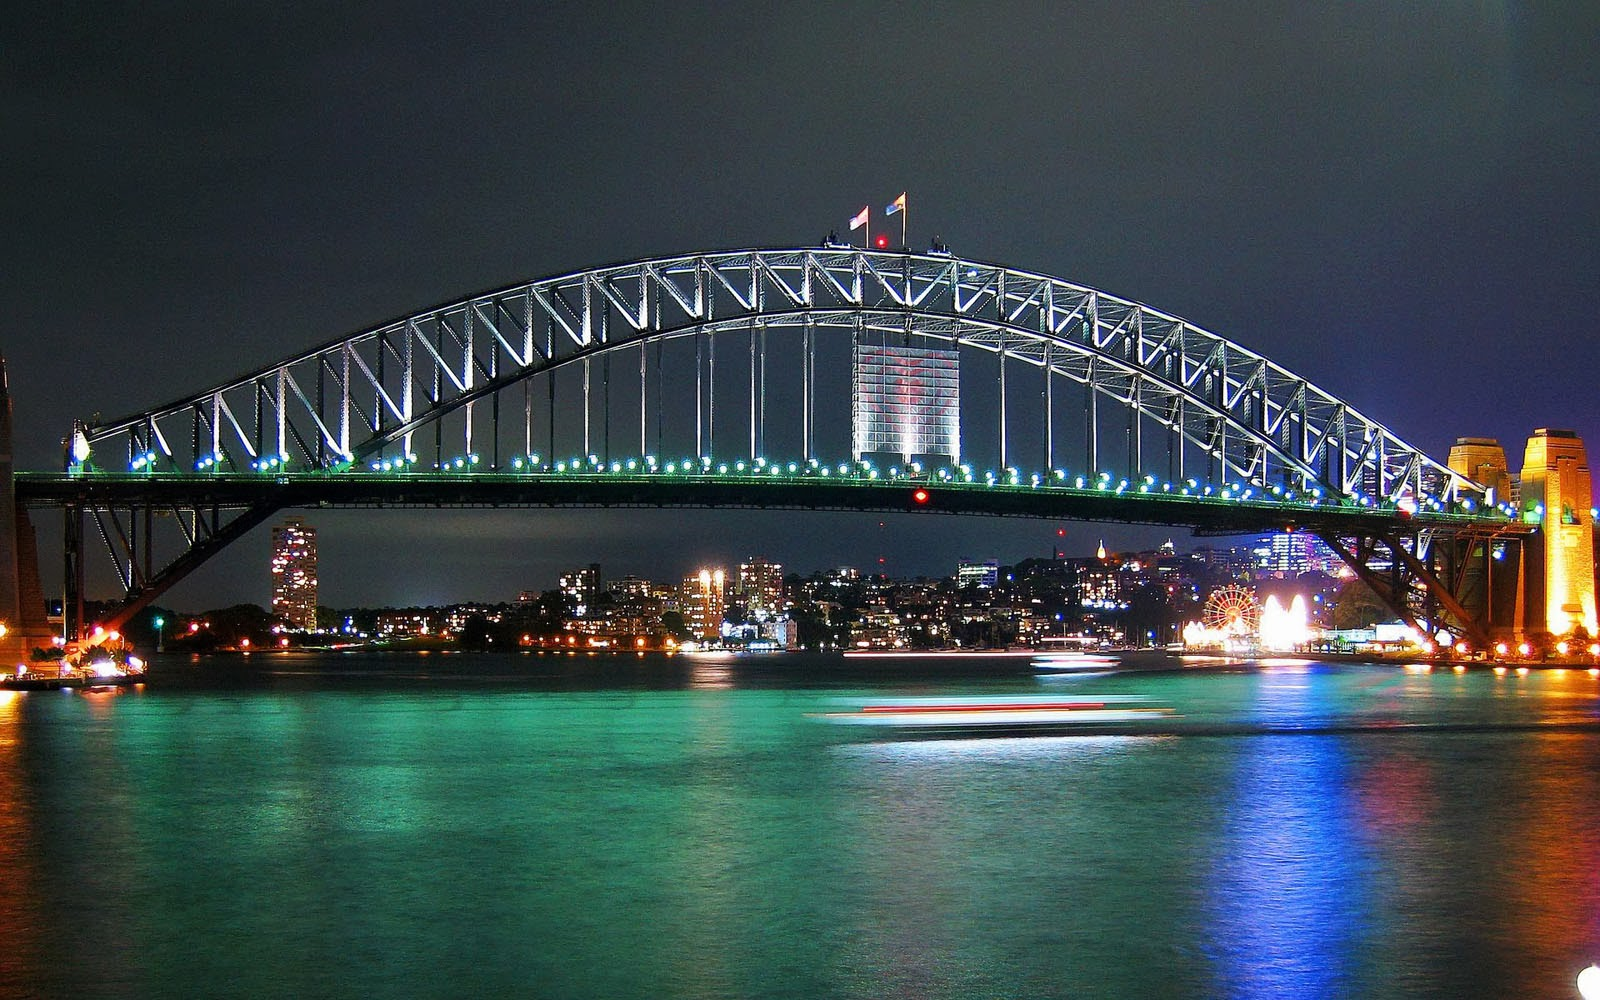 Sydney Harbour Bridge Wallpapers in thecategory of World Wallpapers 1600x1000